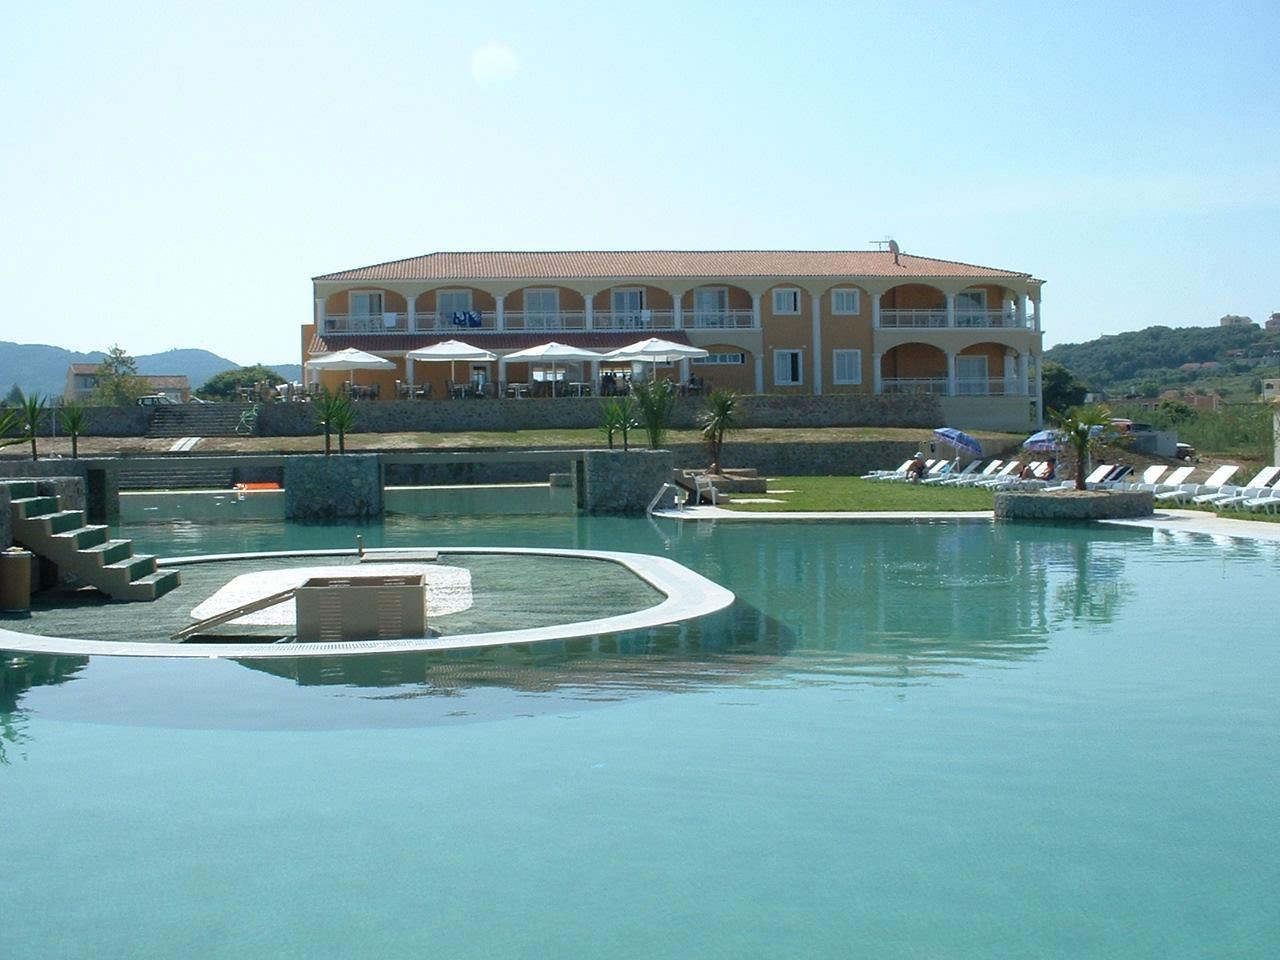 Rear of hotel and swimming pool